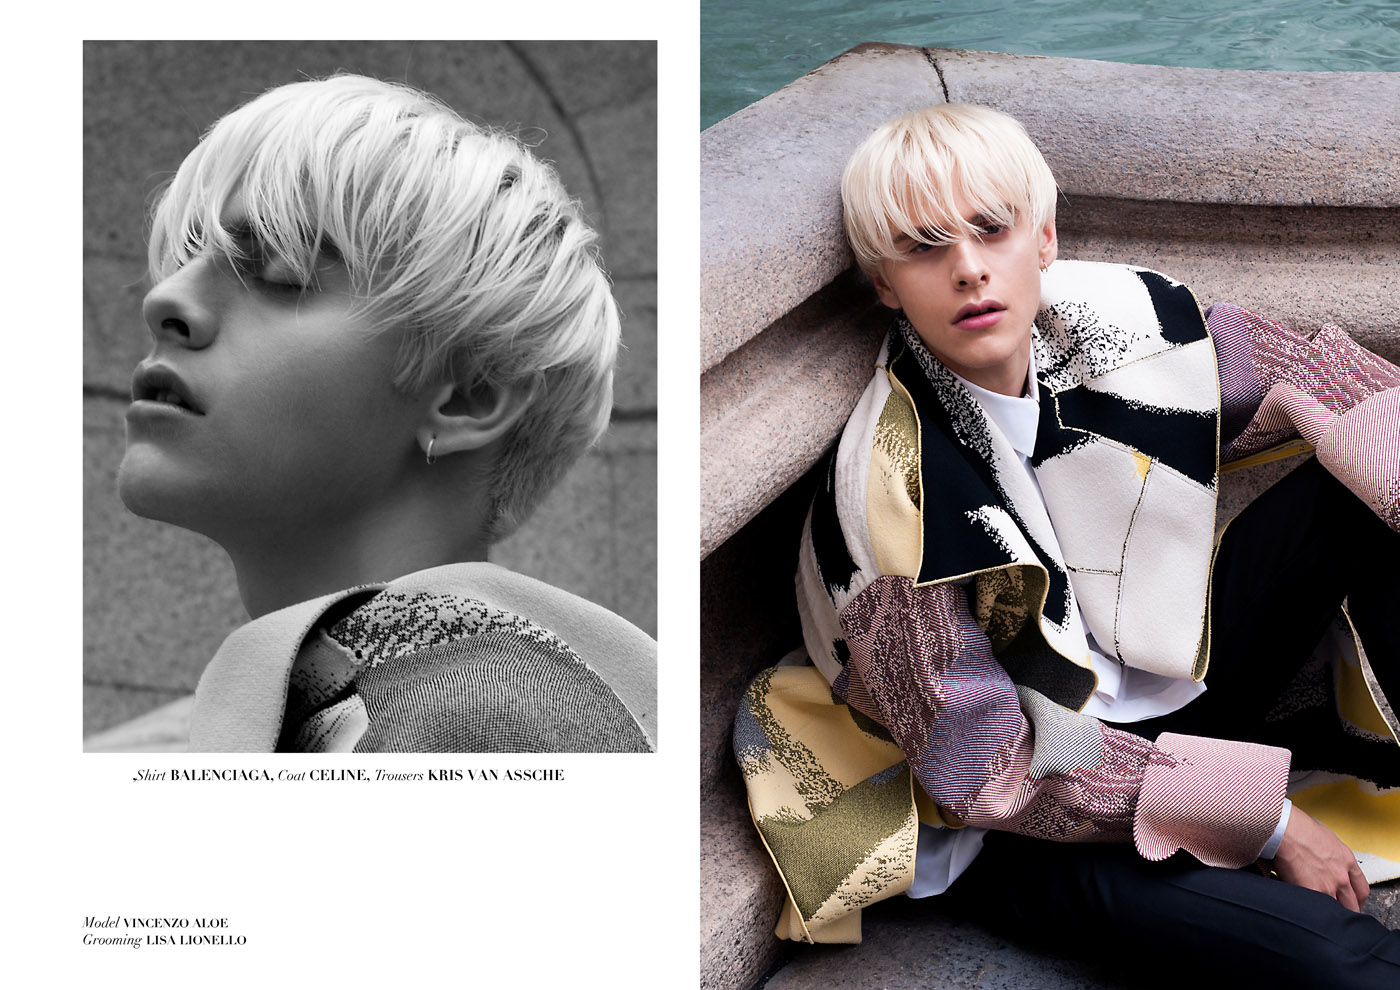 Vincenzo by Simone Lorusso for CHASSEUR MAGAZINE